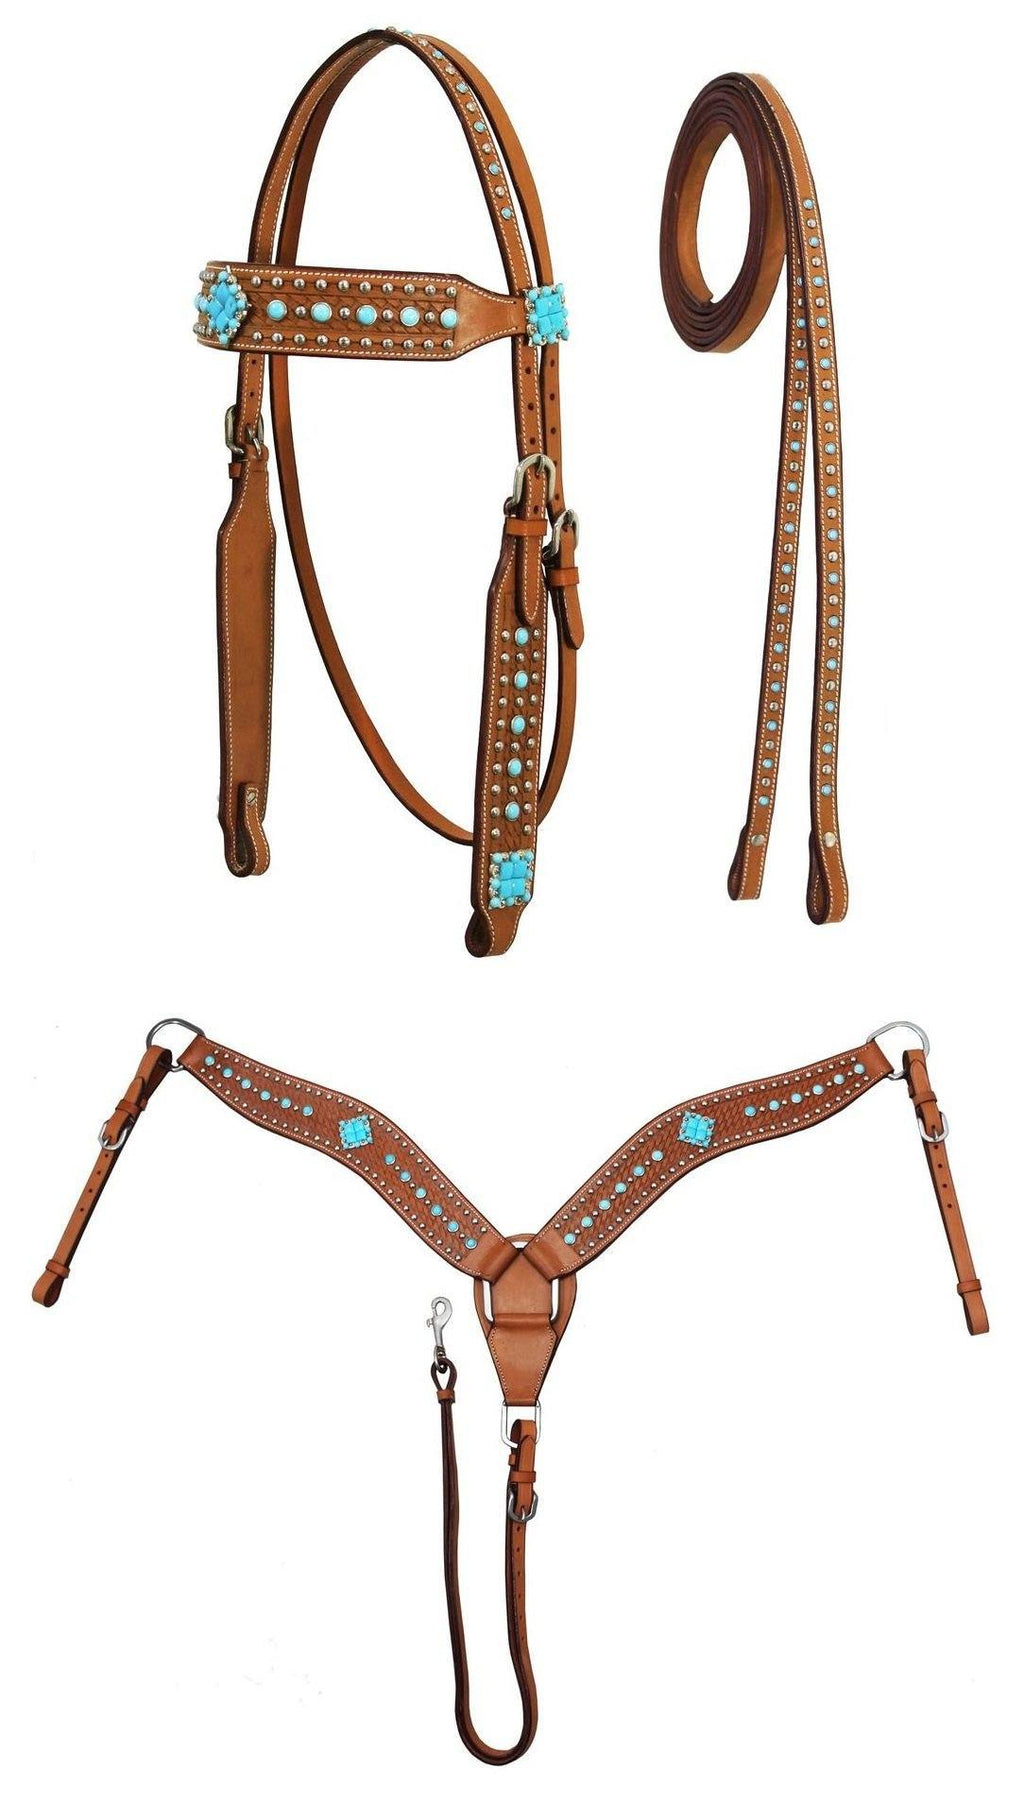 Turquoise Weastern Headstall, Breast Collar & Reins Set